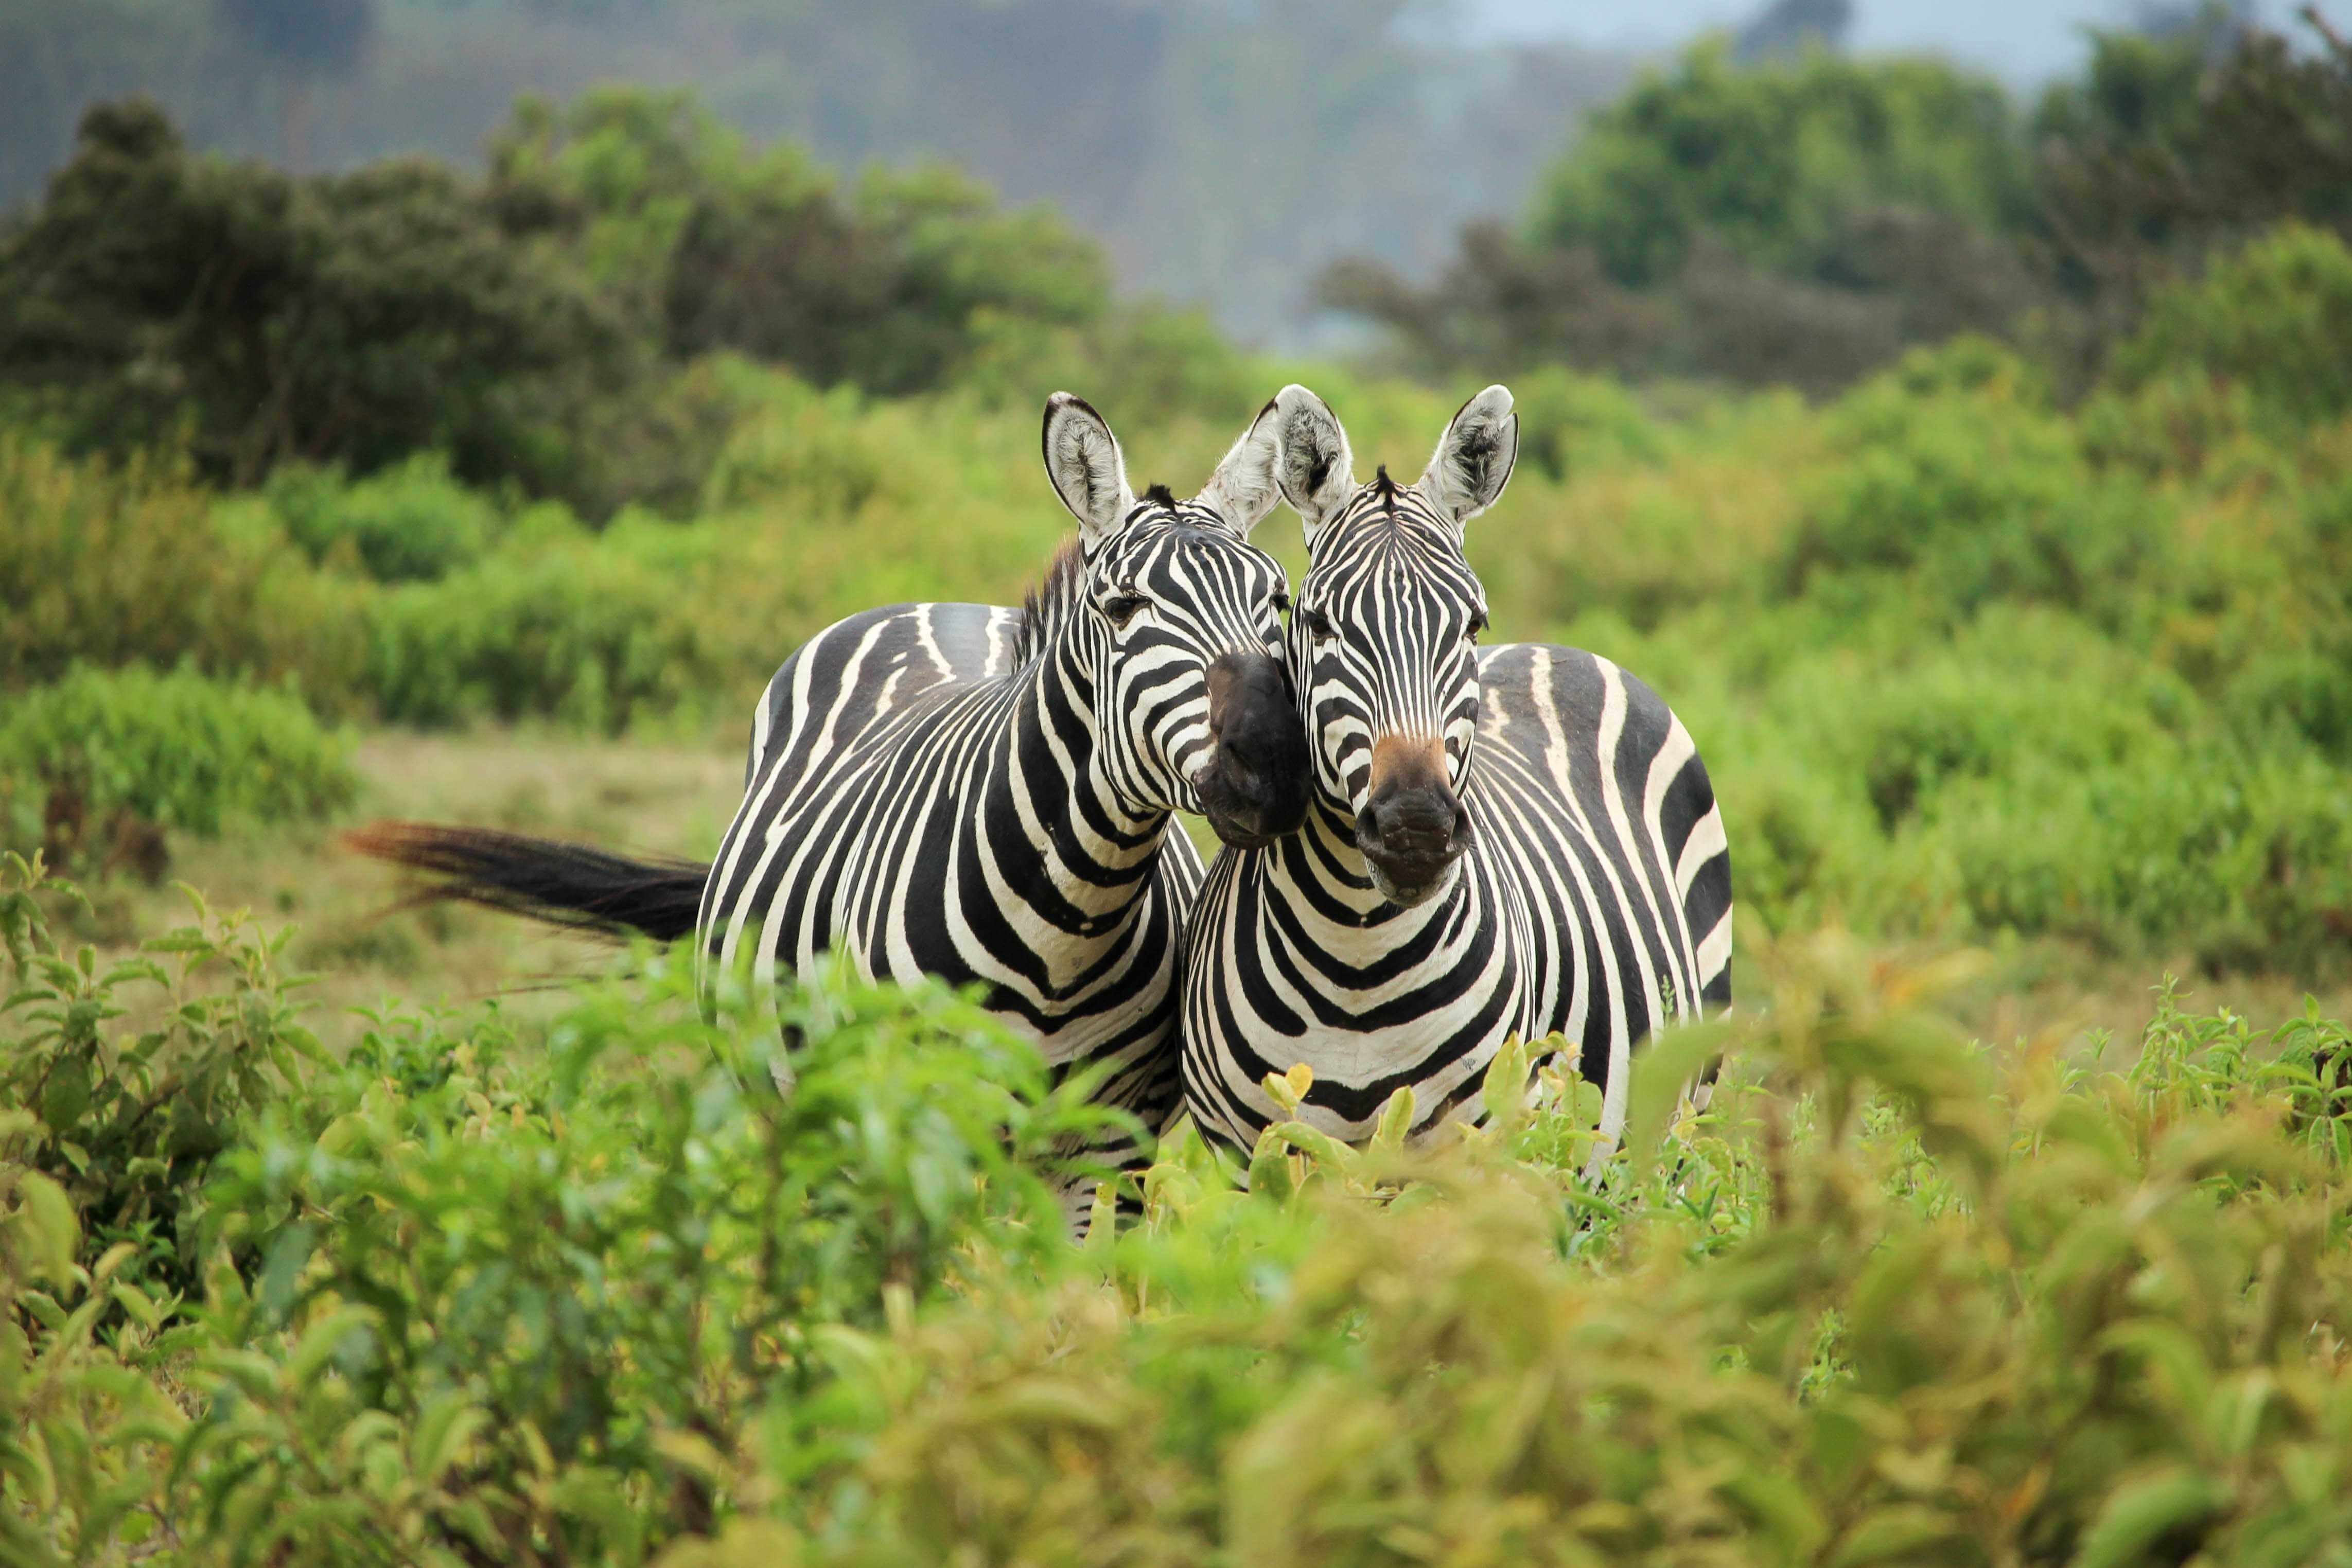 The Big Five of South Africa are the lion, leopard, rhino, cape buffalo and the elephant. Spot Zebras too!